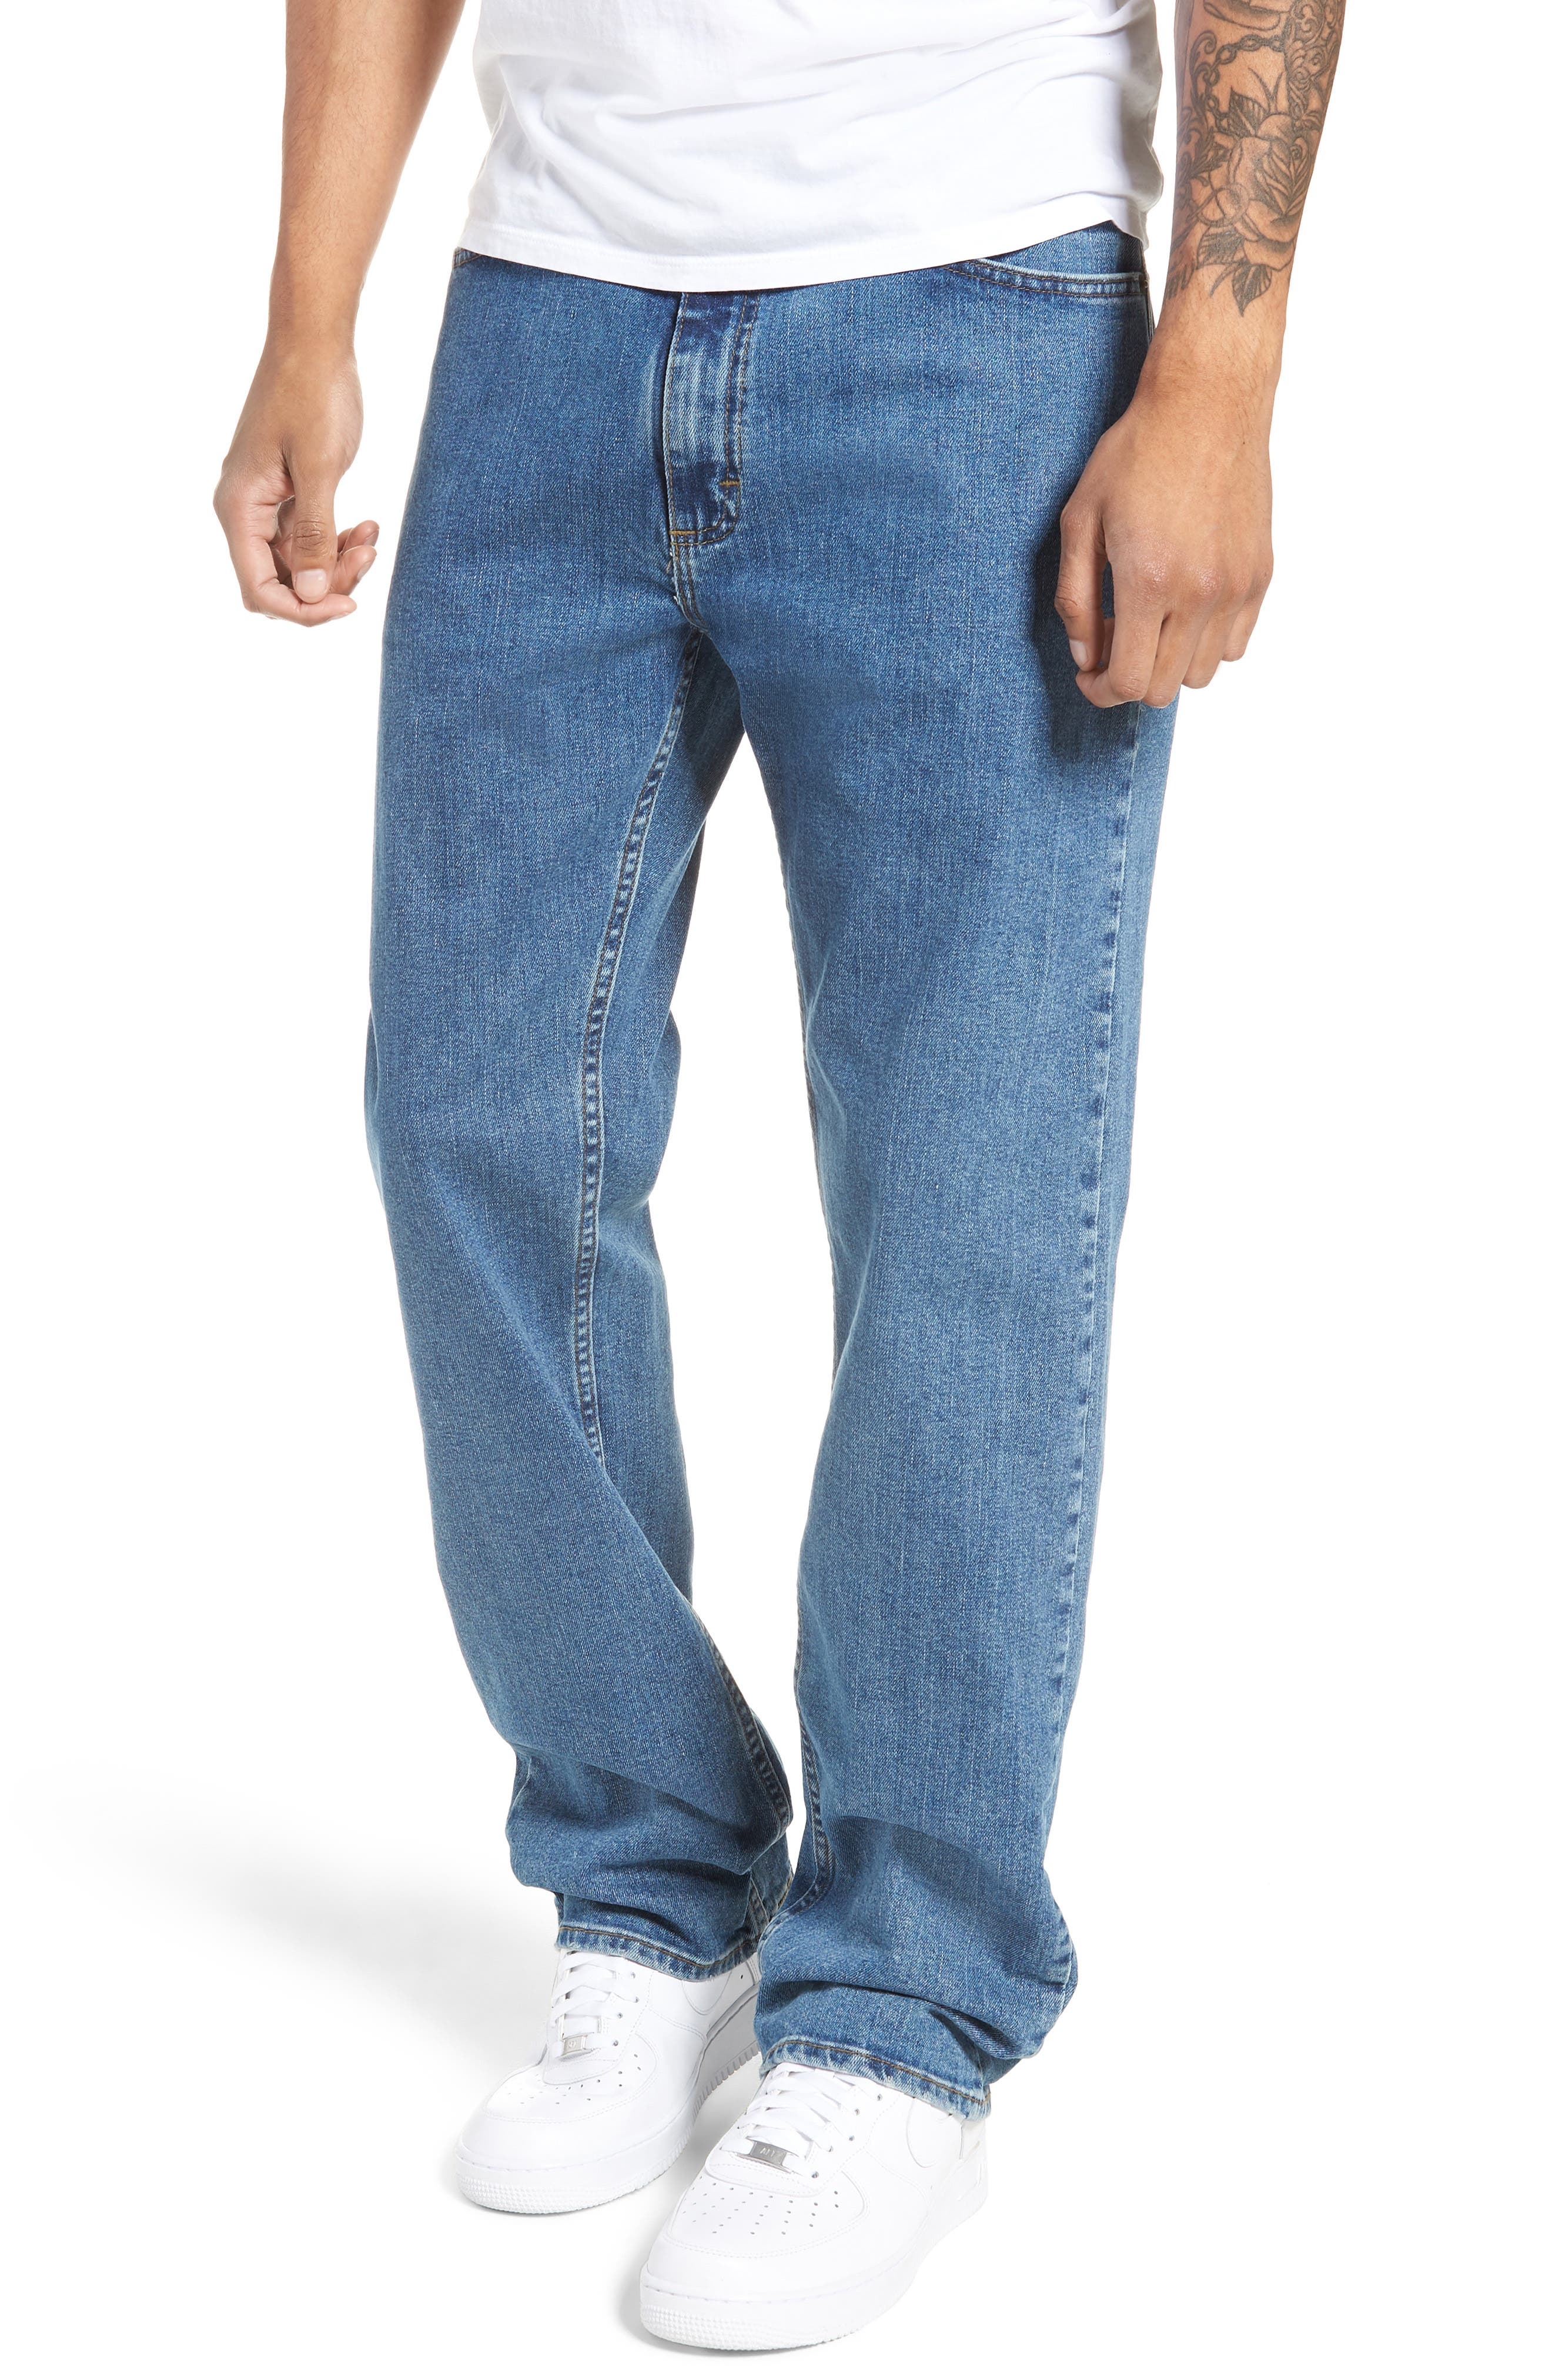 V96 Relaxed Fit Jeans,                         Main,                         color, STONE WASH